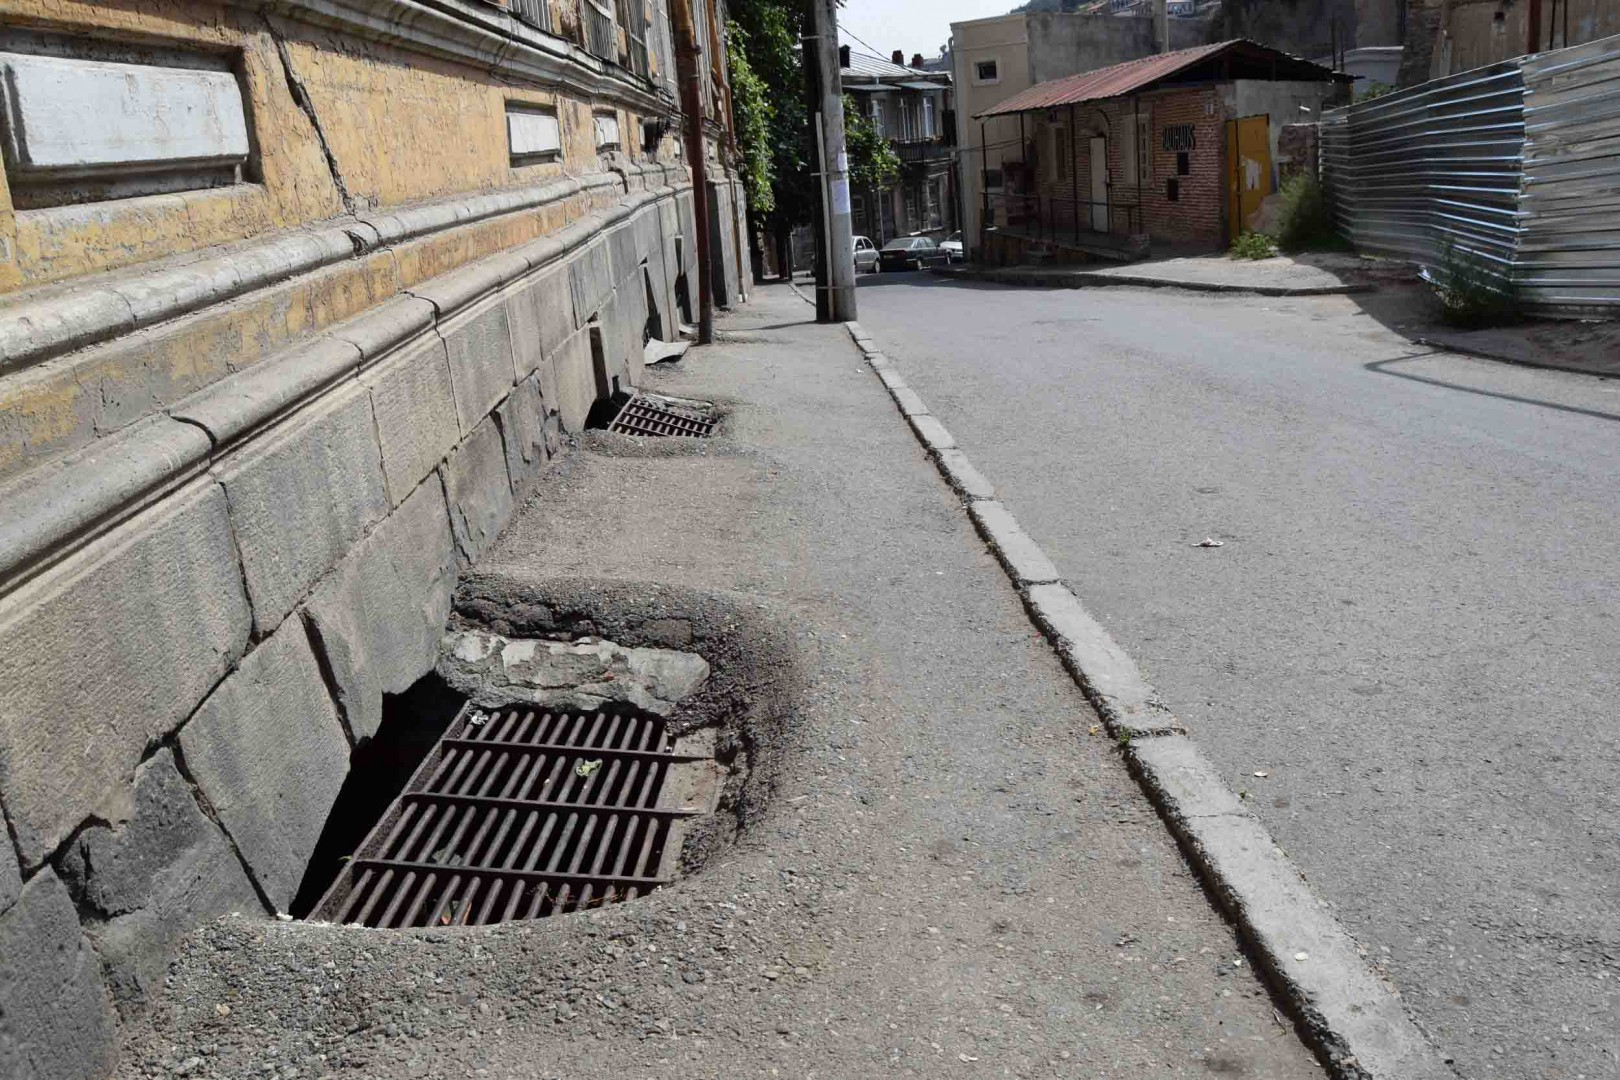 Sidewalks in Old Tbilisi, Abo Tbileli Street.